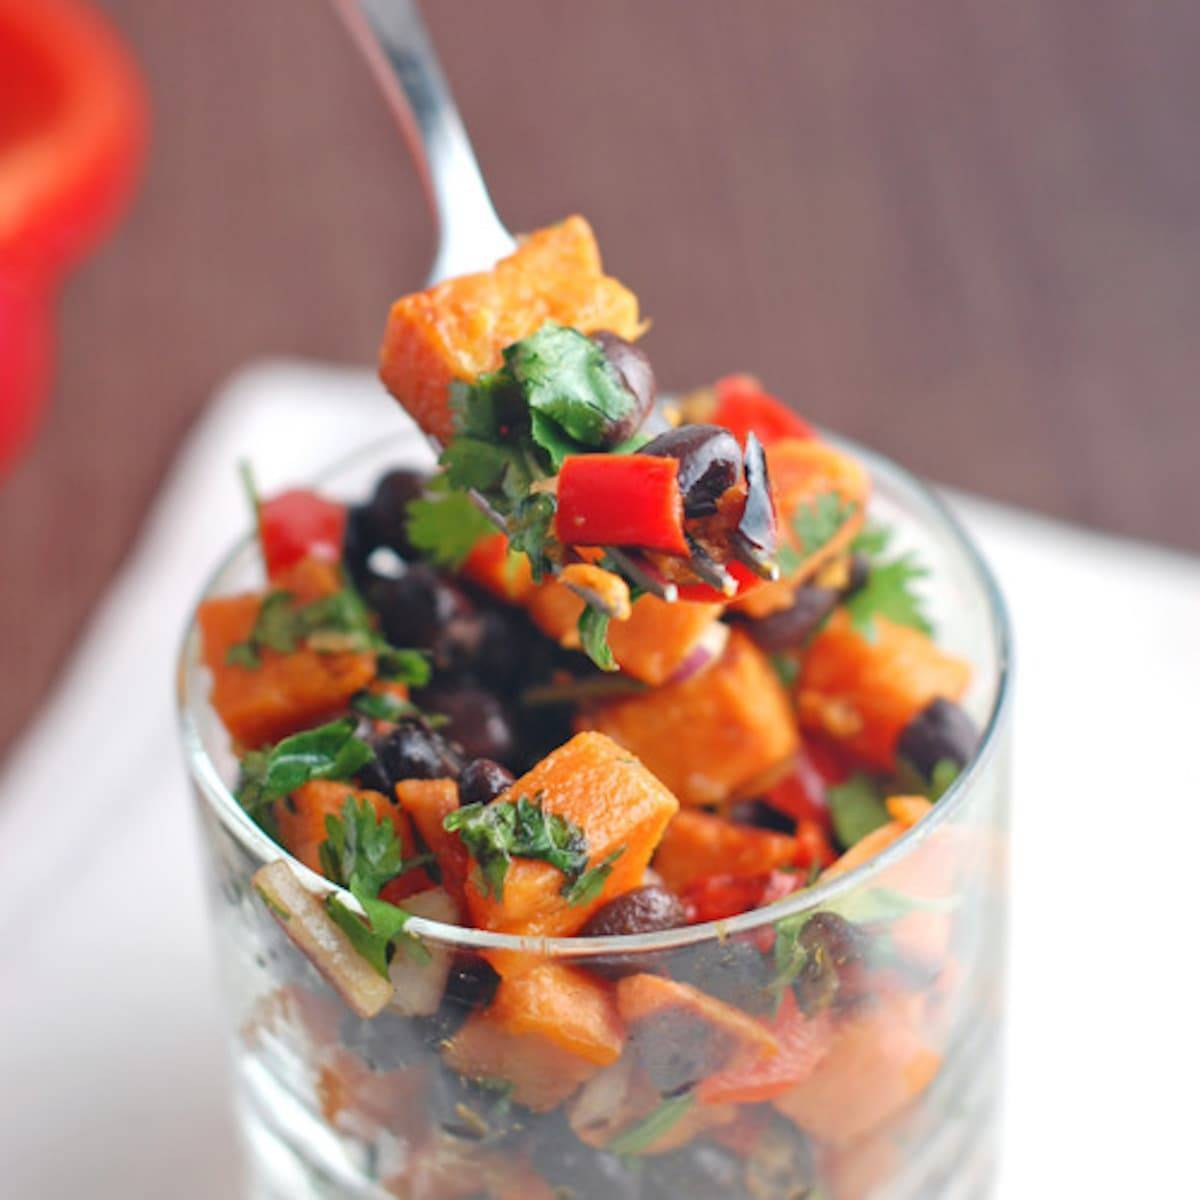 This roasted sweet potato salad features black beans, bell peppers, and of course, roasted sweet potatoes with a simple dressing. Fresh and yummy! | pinchofyum.com